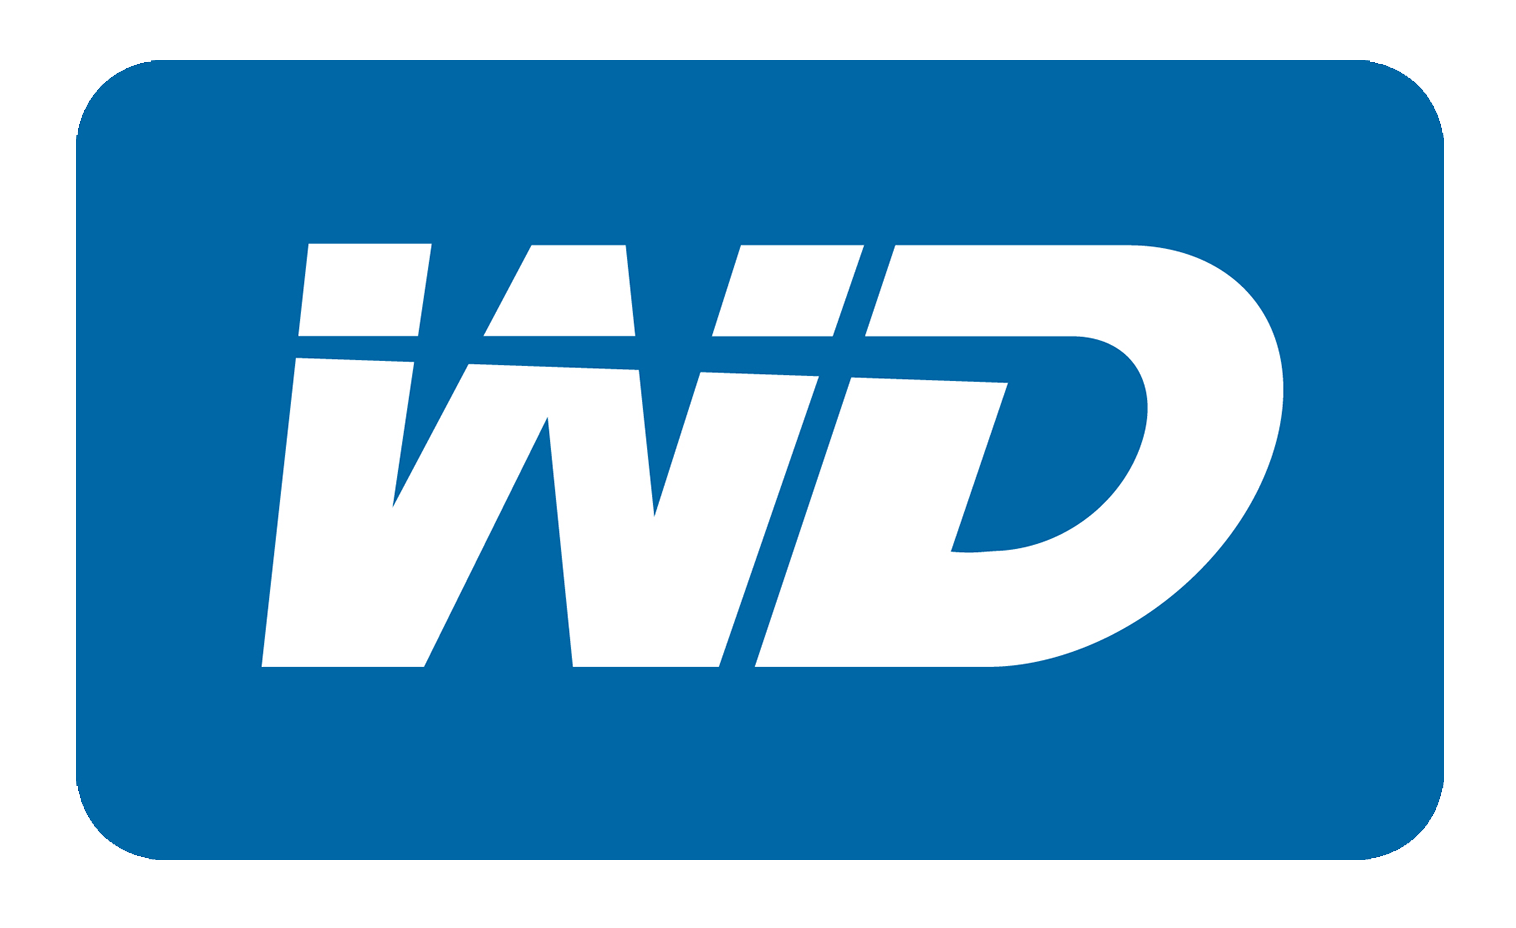 Western Digital (WDC) Lowered to Sell at ValuEngine